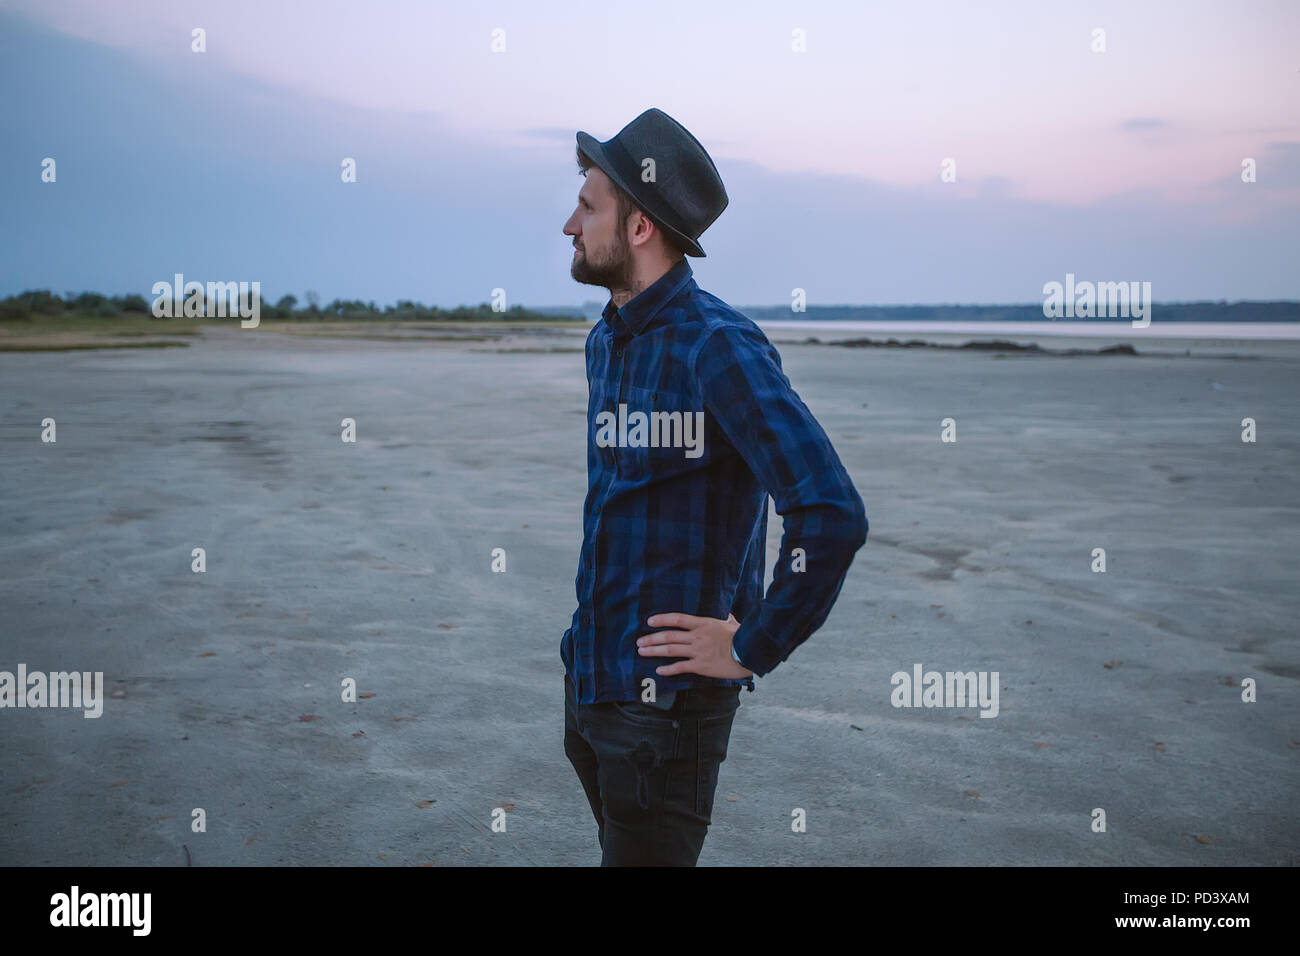 Man in hat on beach at sunset, Odessa, Ukraine - Stock Image